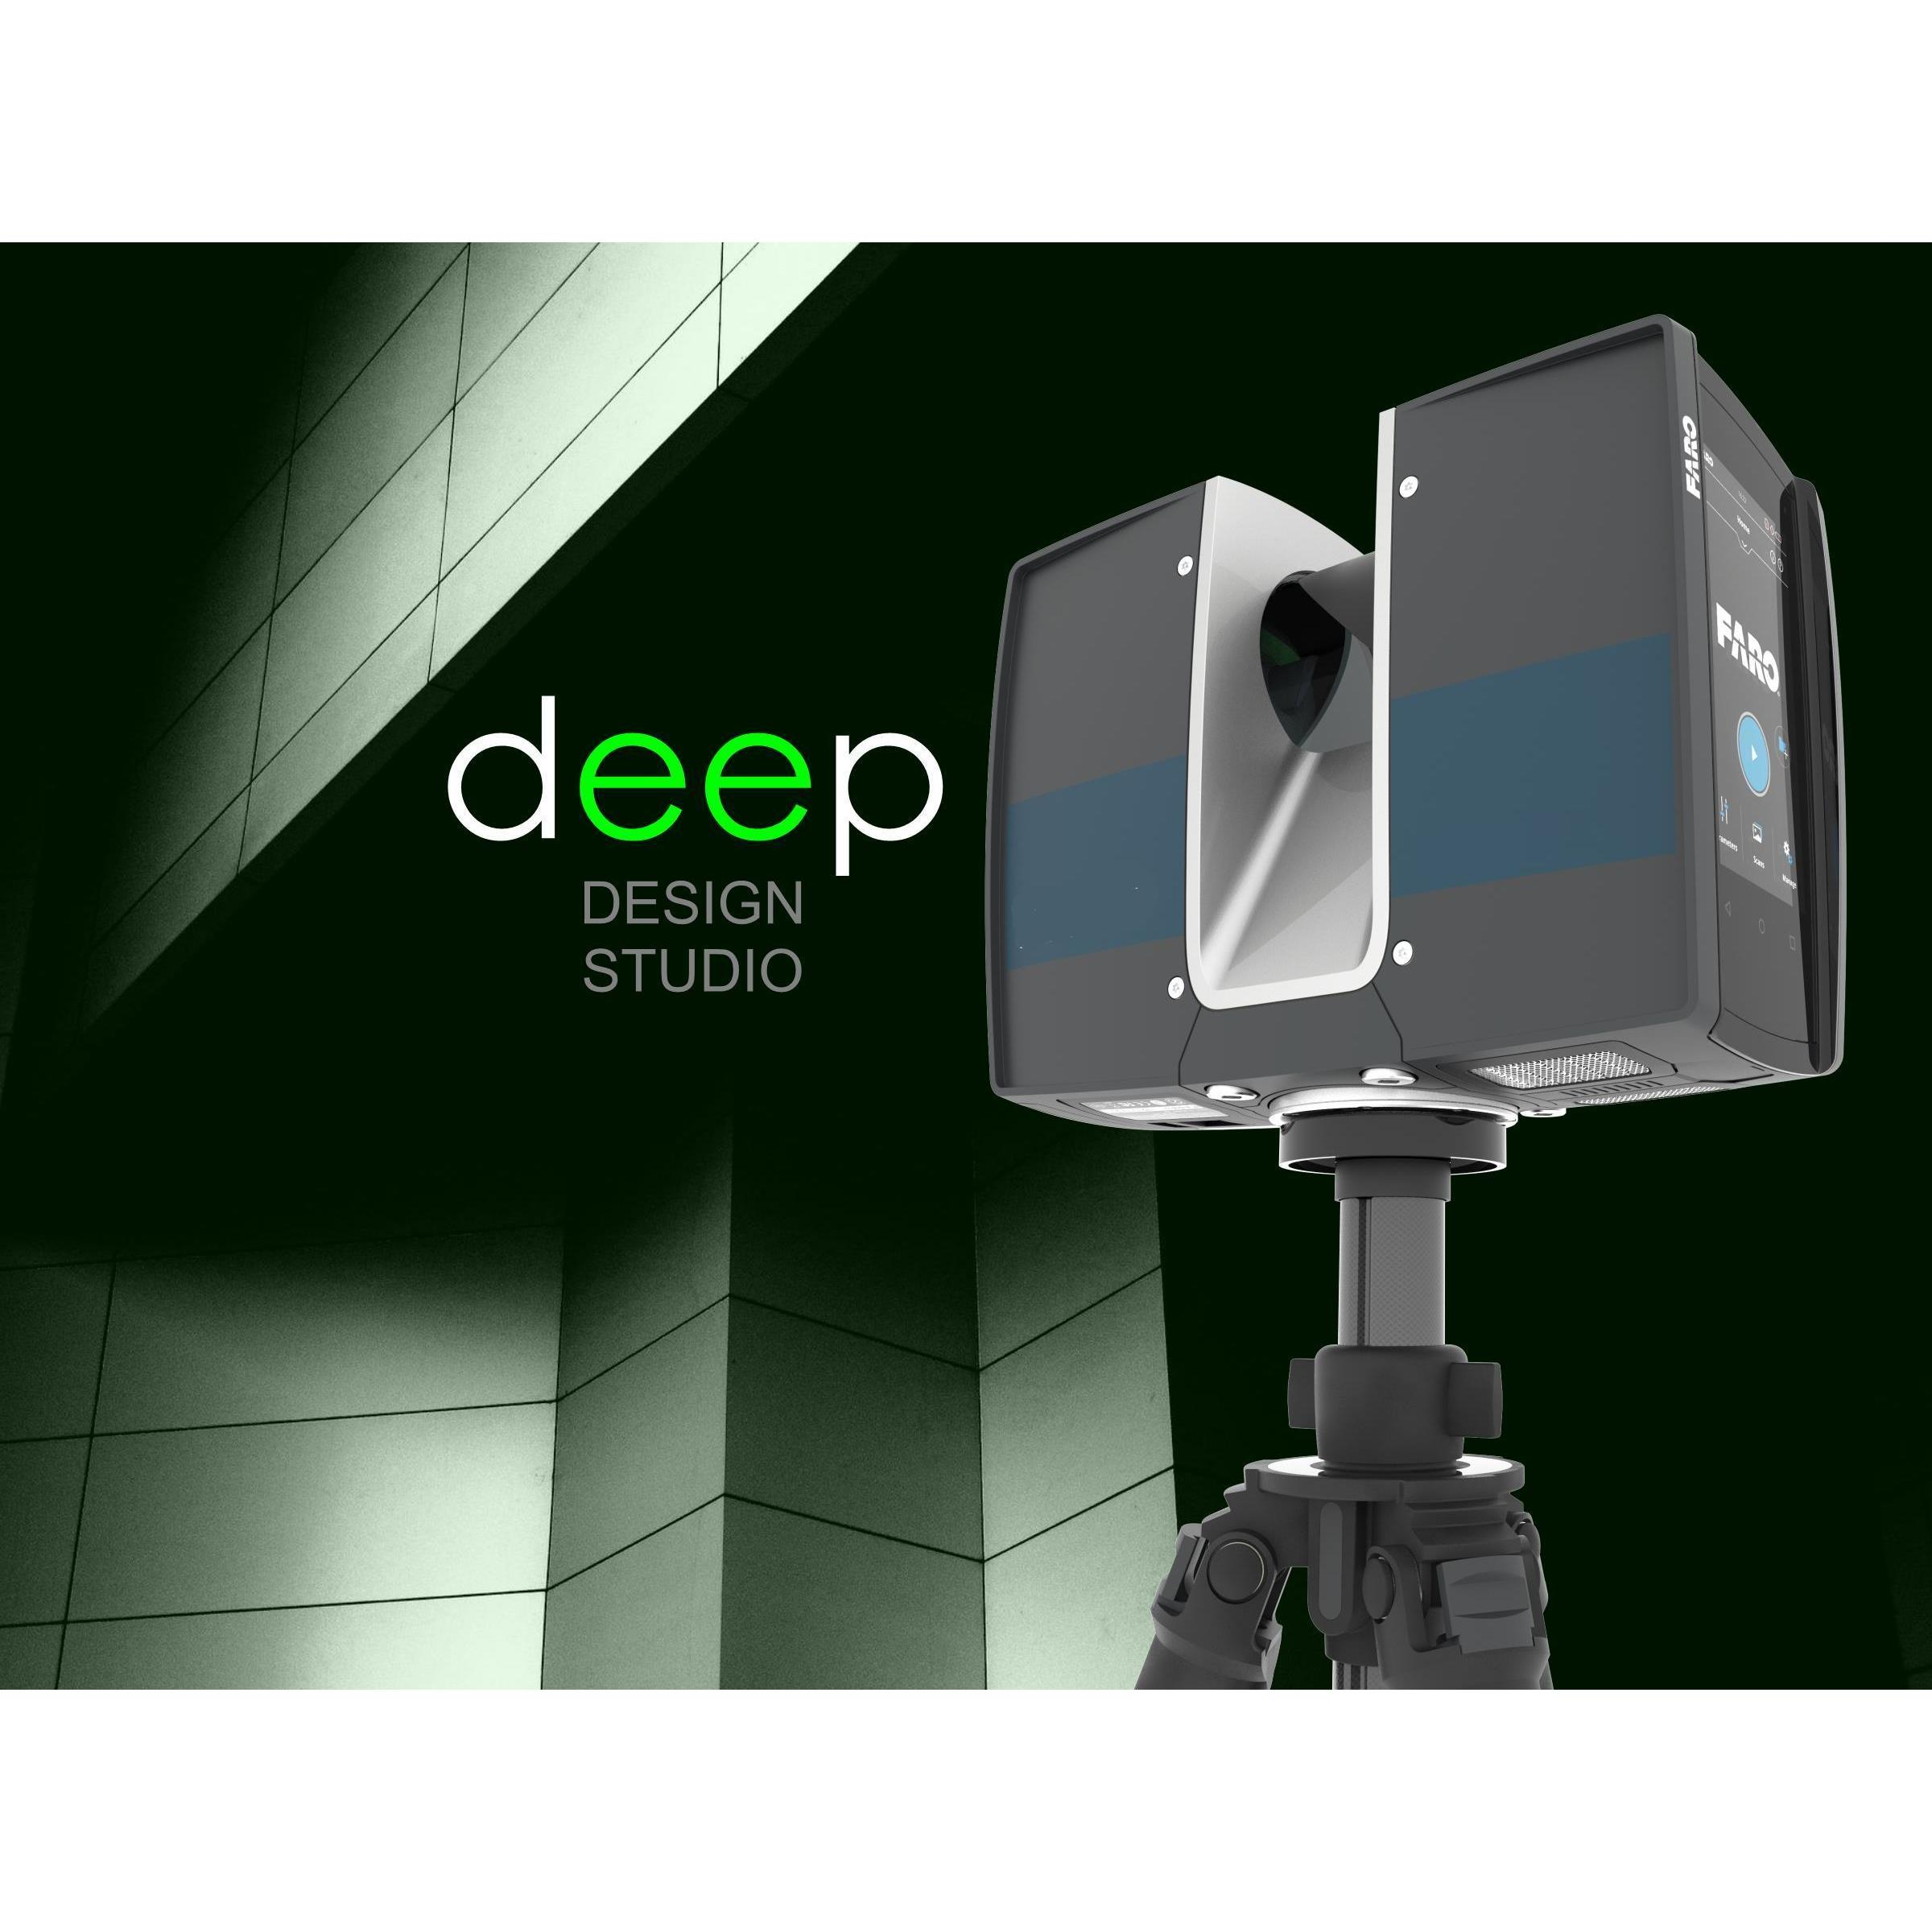 Deep Design Studio